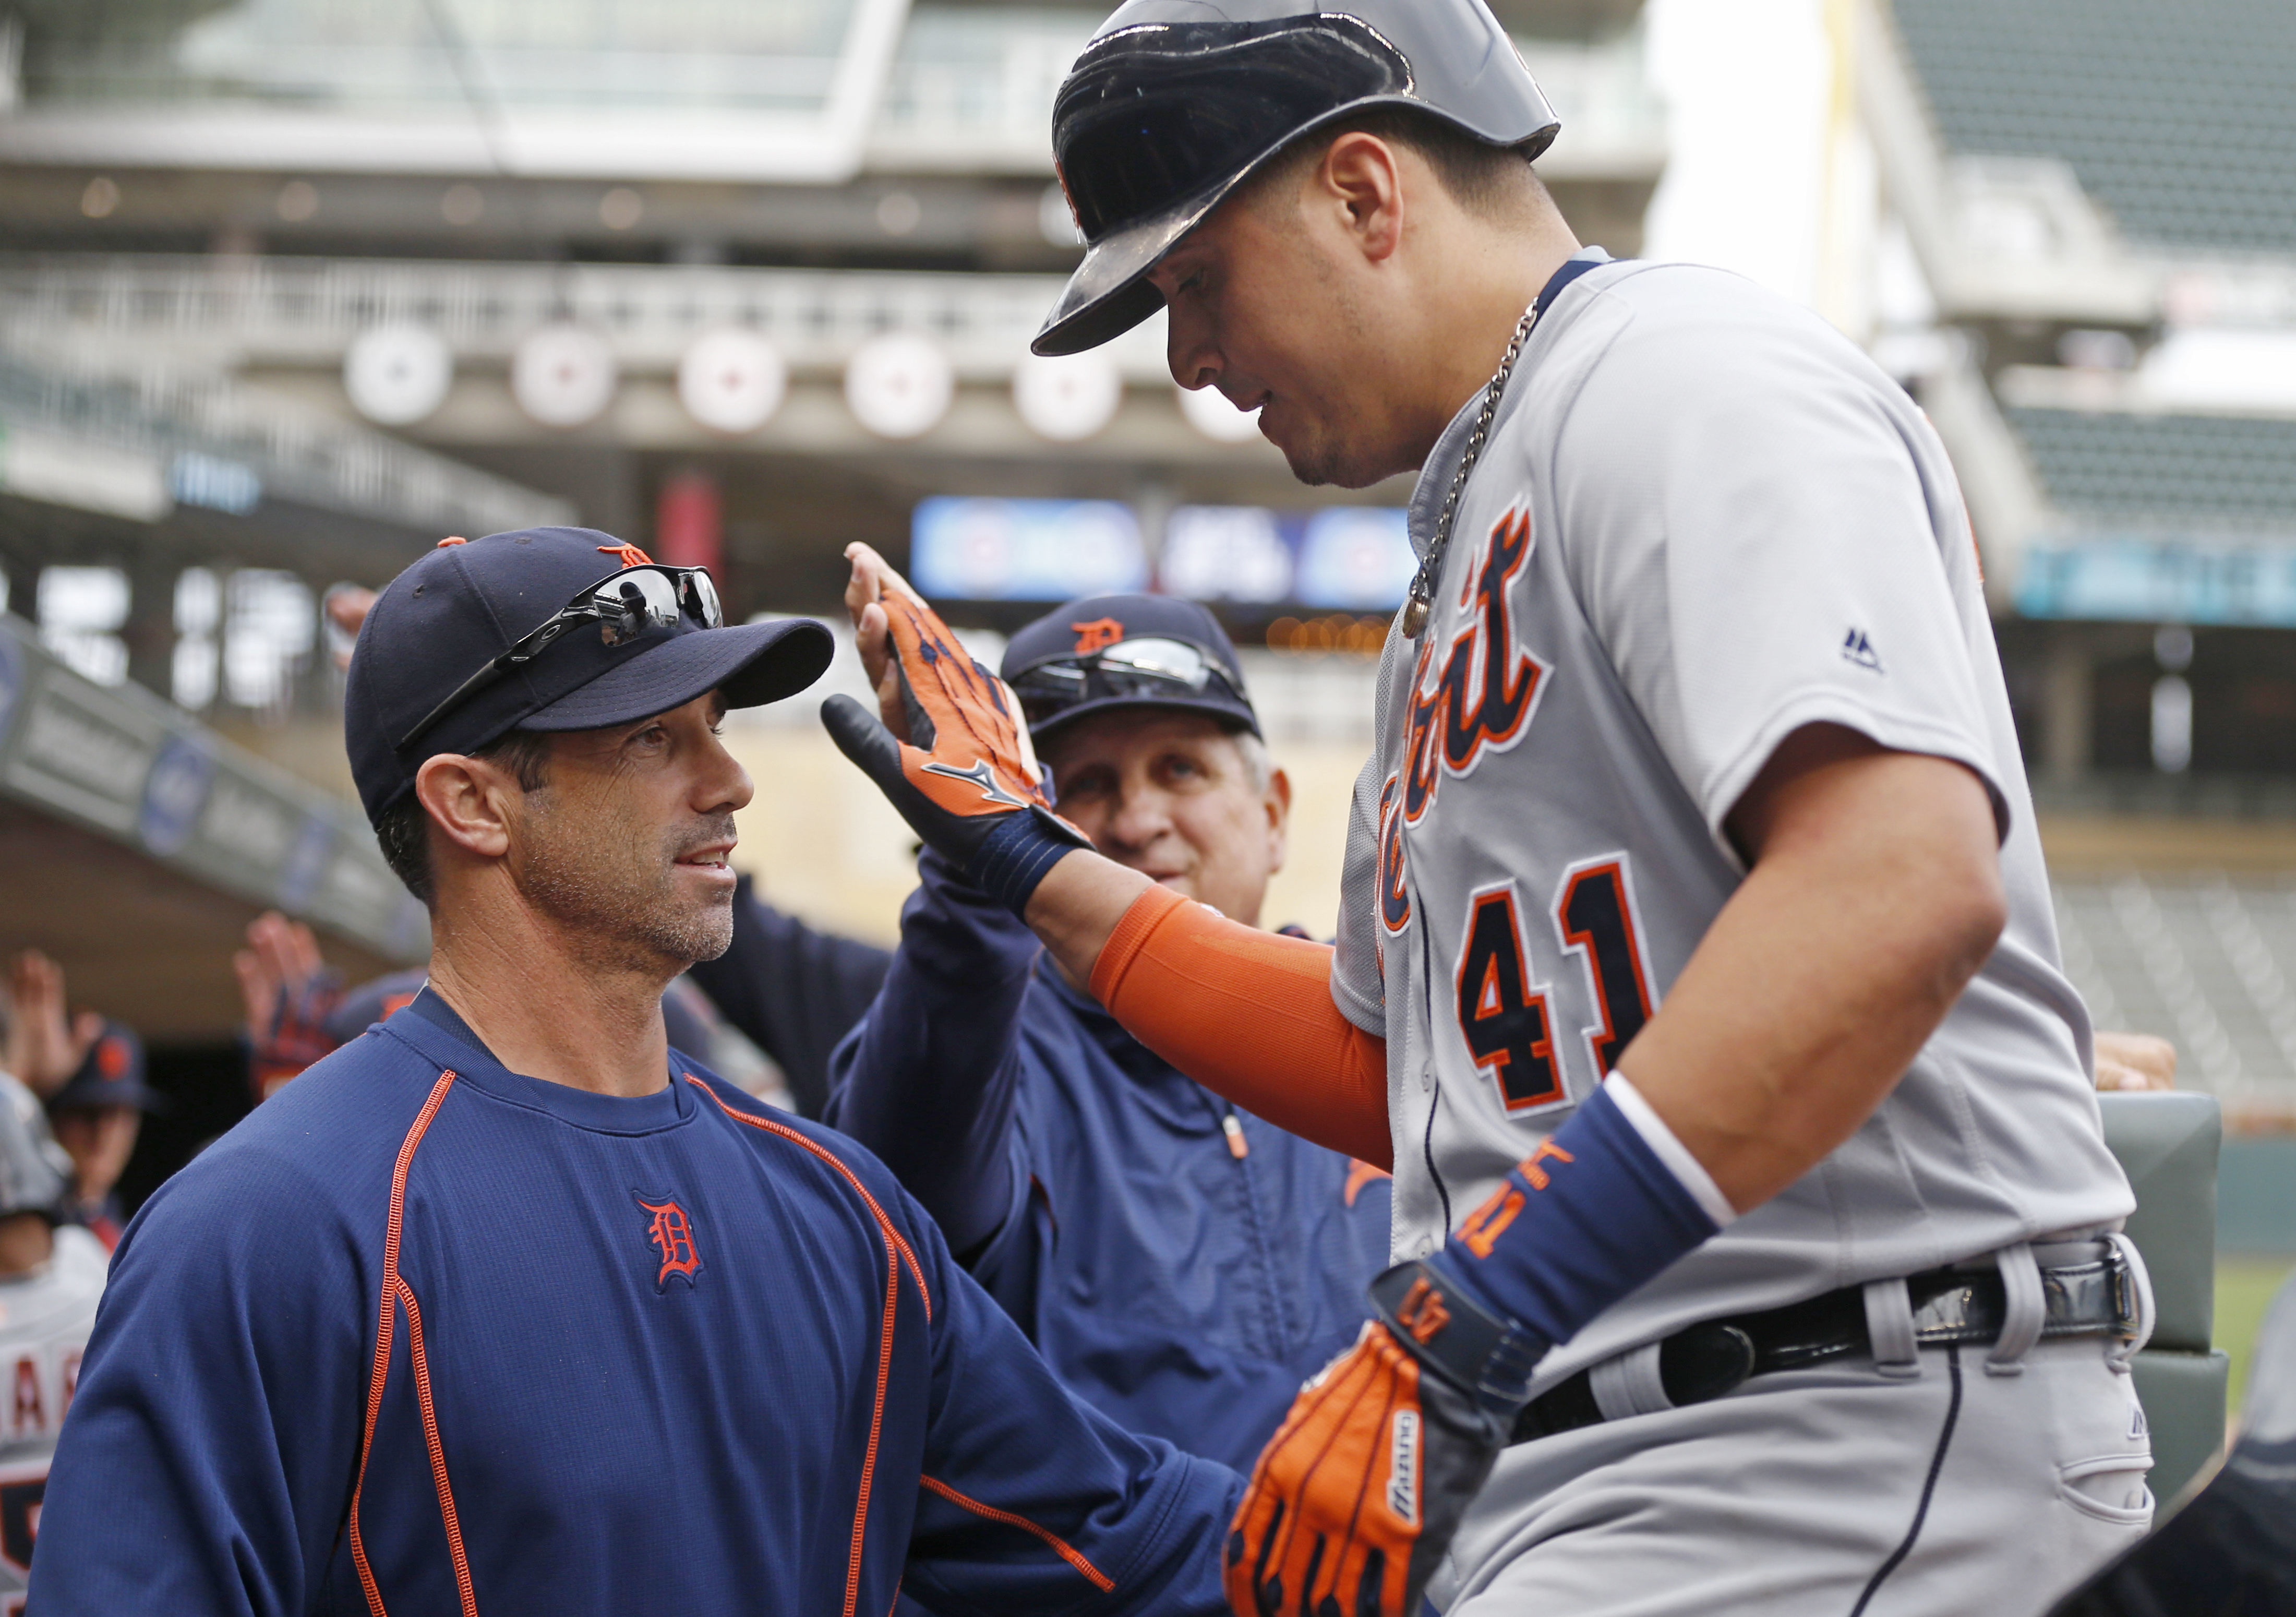 Detroit Tigers pinch hitter Victor Martinez is greete at the dugout after hitting a three-run home run off Minnesota Twins pitcher Michael Tonkin during the ninth inning in the first game of a baseball doubleheader Thursday, Sept. 22, 2016, in Minneapolis